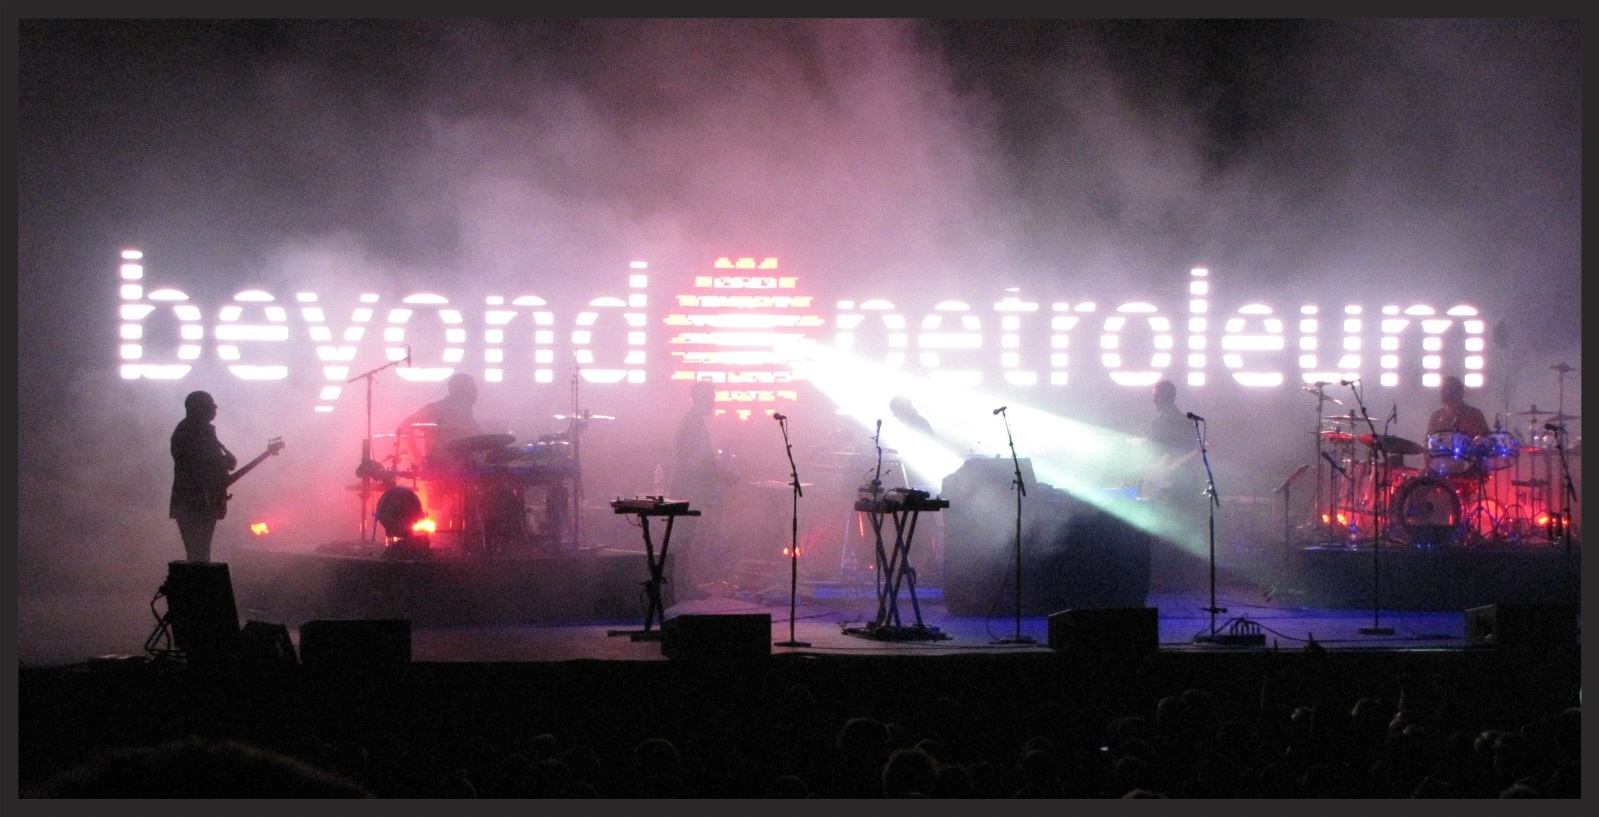 Atlas Air when played live on the Heligoland tour (2009-2010), the LED screen behind Massive Attack contrasted such information as the flightpaths of rendition flights, with corporate logos and religious symbols.